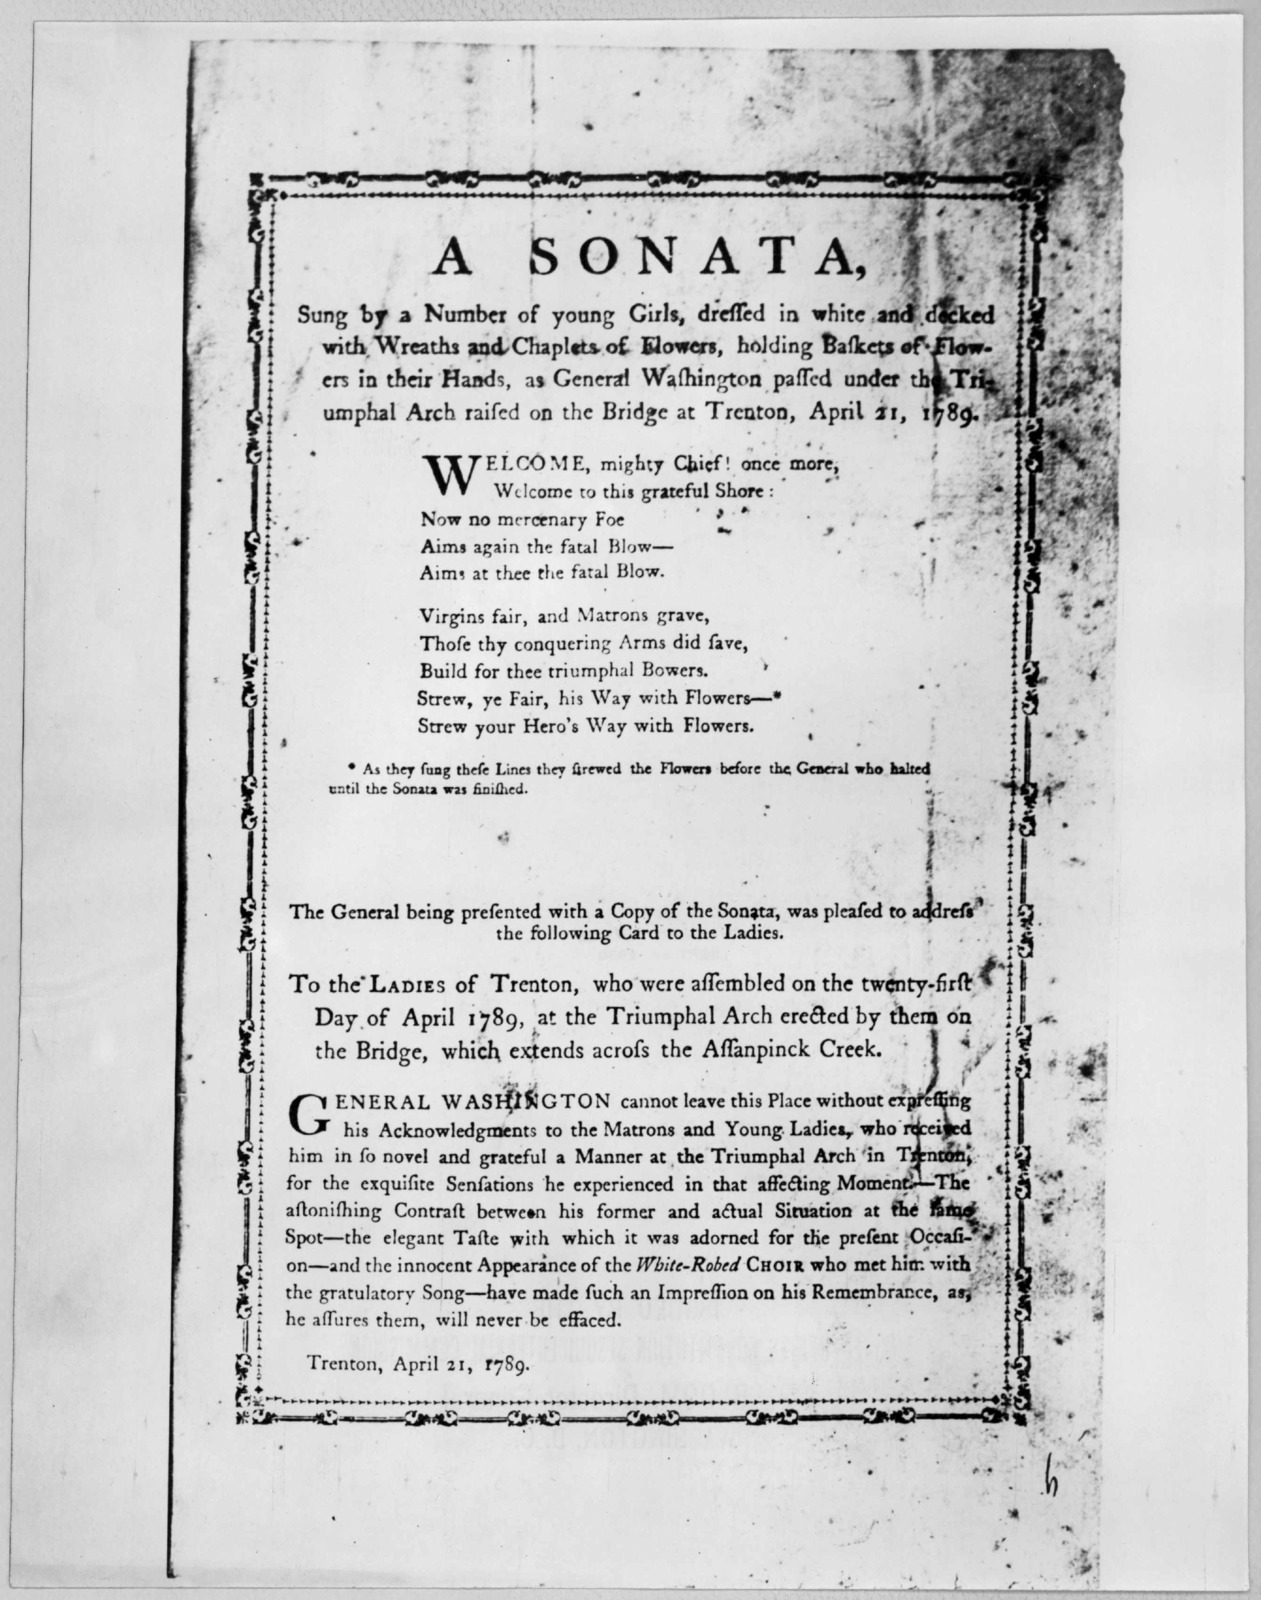 A sonata, sung by a number of young girls, dressed in white and decked with wreaths and chaplets of flowers, holding baskets of flowers in their hands as General Washington passed under the Triumphal arch raised on the bridge at Trenton, April 2